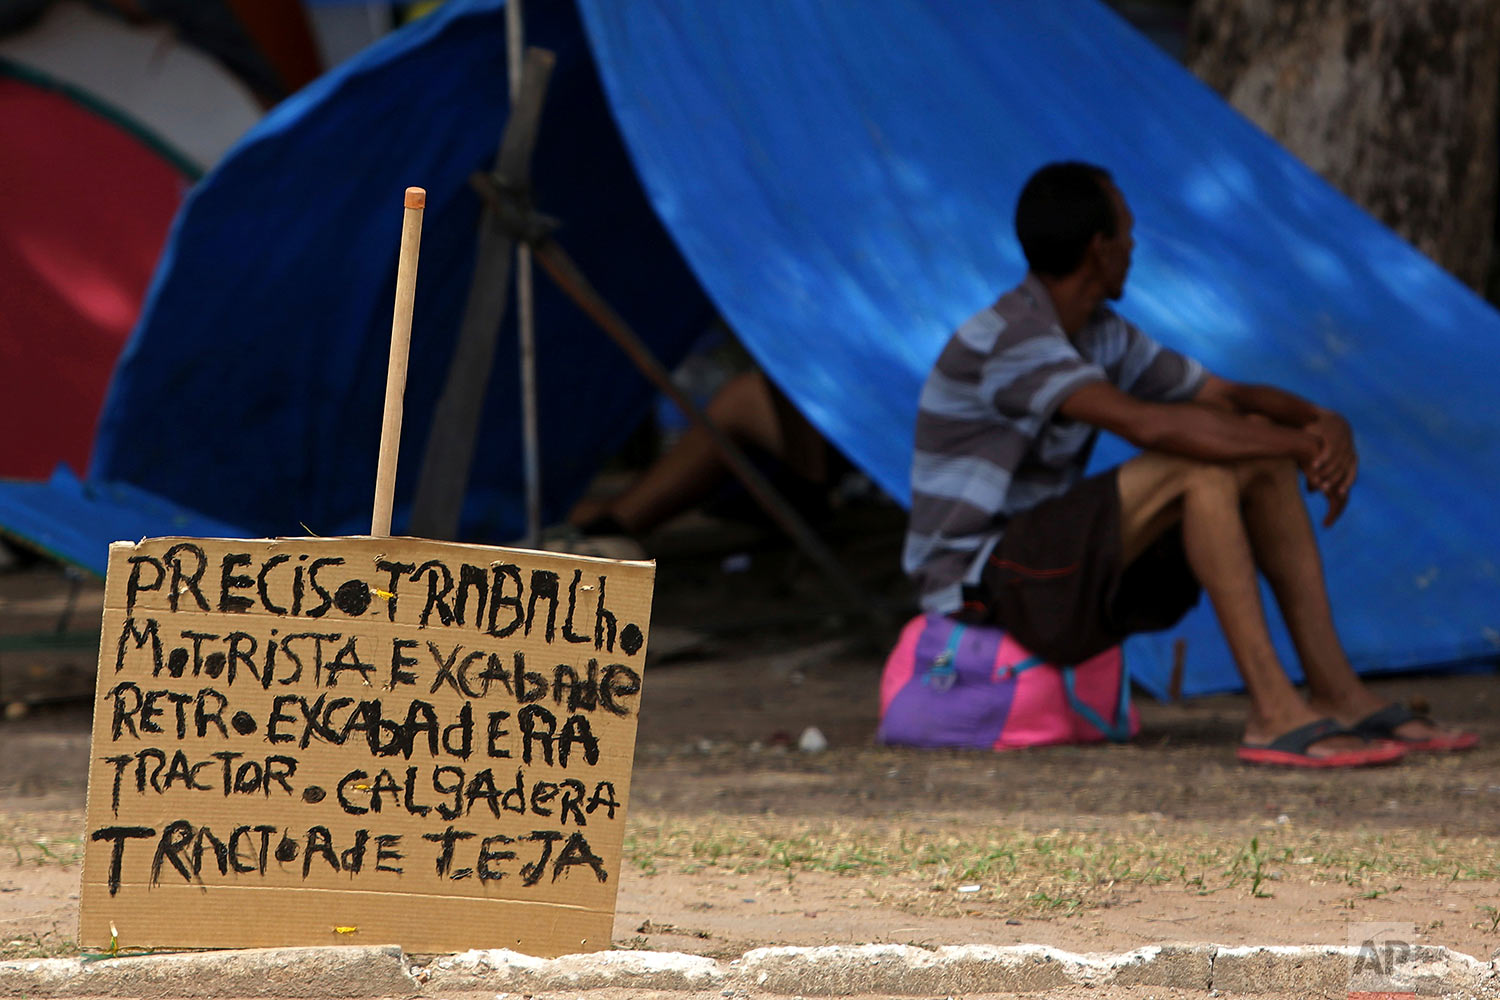 """A sign that reads in Portuguese: """"I need work. Tractor driver. Excavator."""" stands near a Venezuelan migrant outside his tent in Simon Bolivar Square where many Venezuelans have set up tents in Boa Vista, Roraima, Brazil, March 11, 2018. (AP Photo/Eraldo Peres)"""